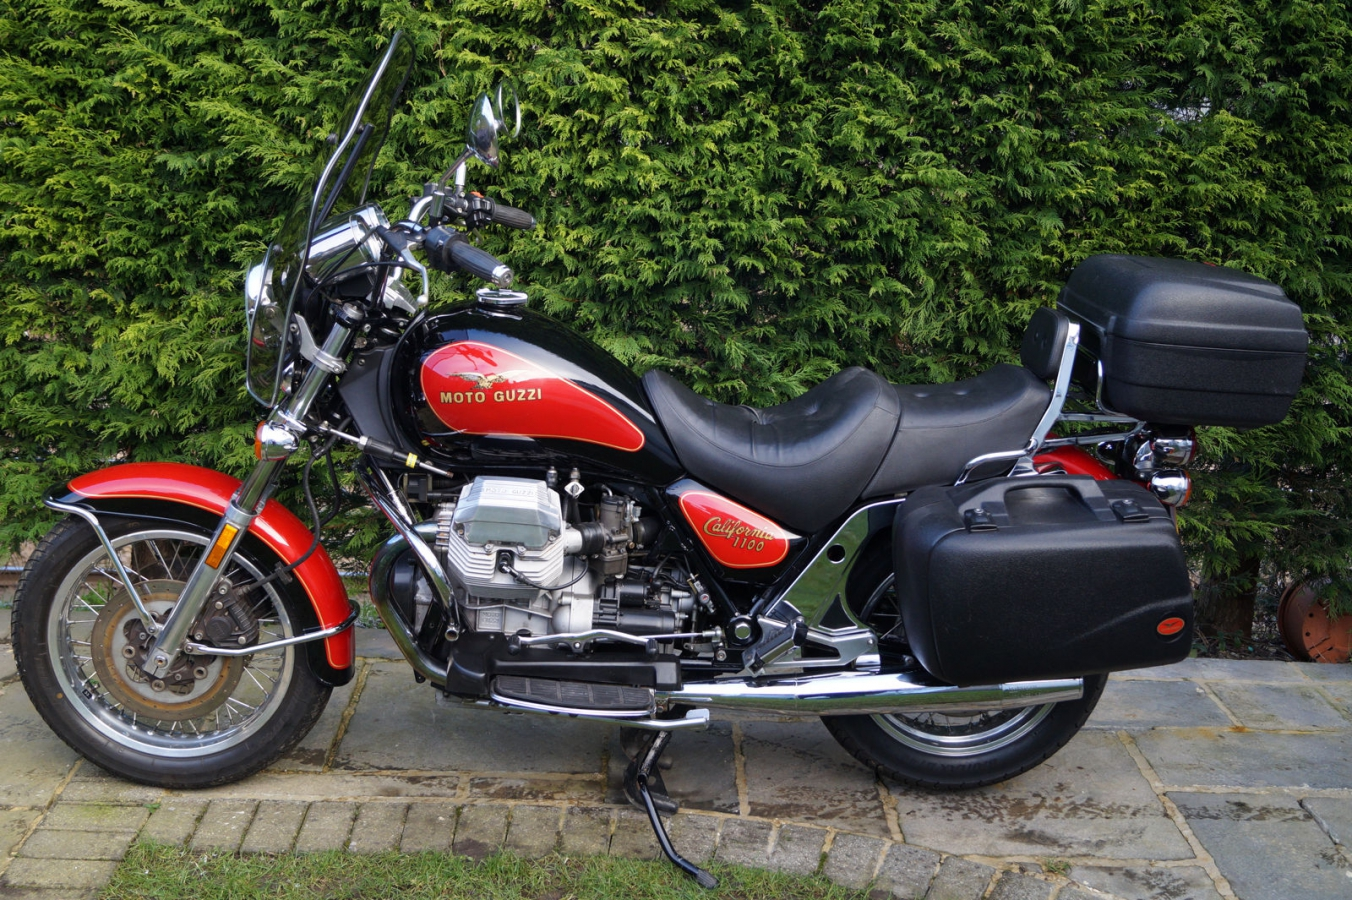 Moto Guzzi California 1100 i images #157203